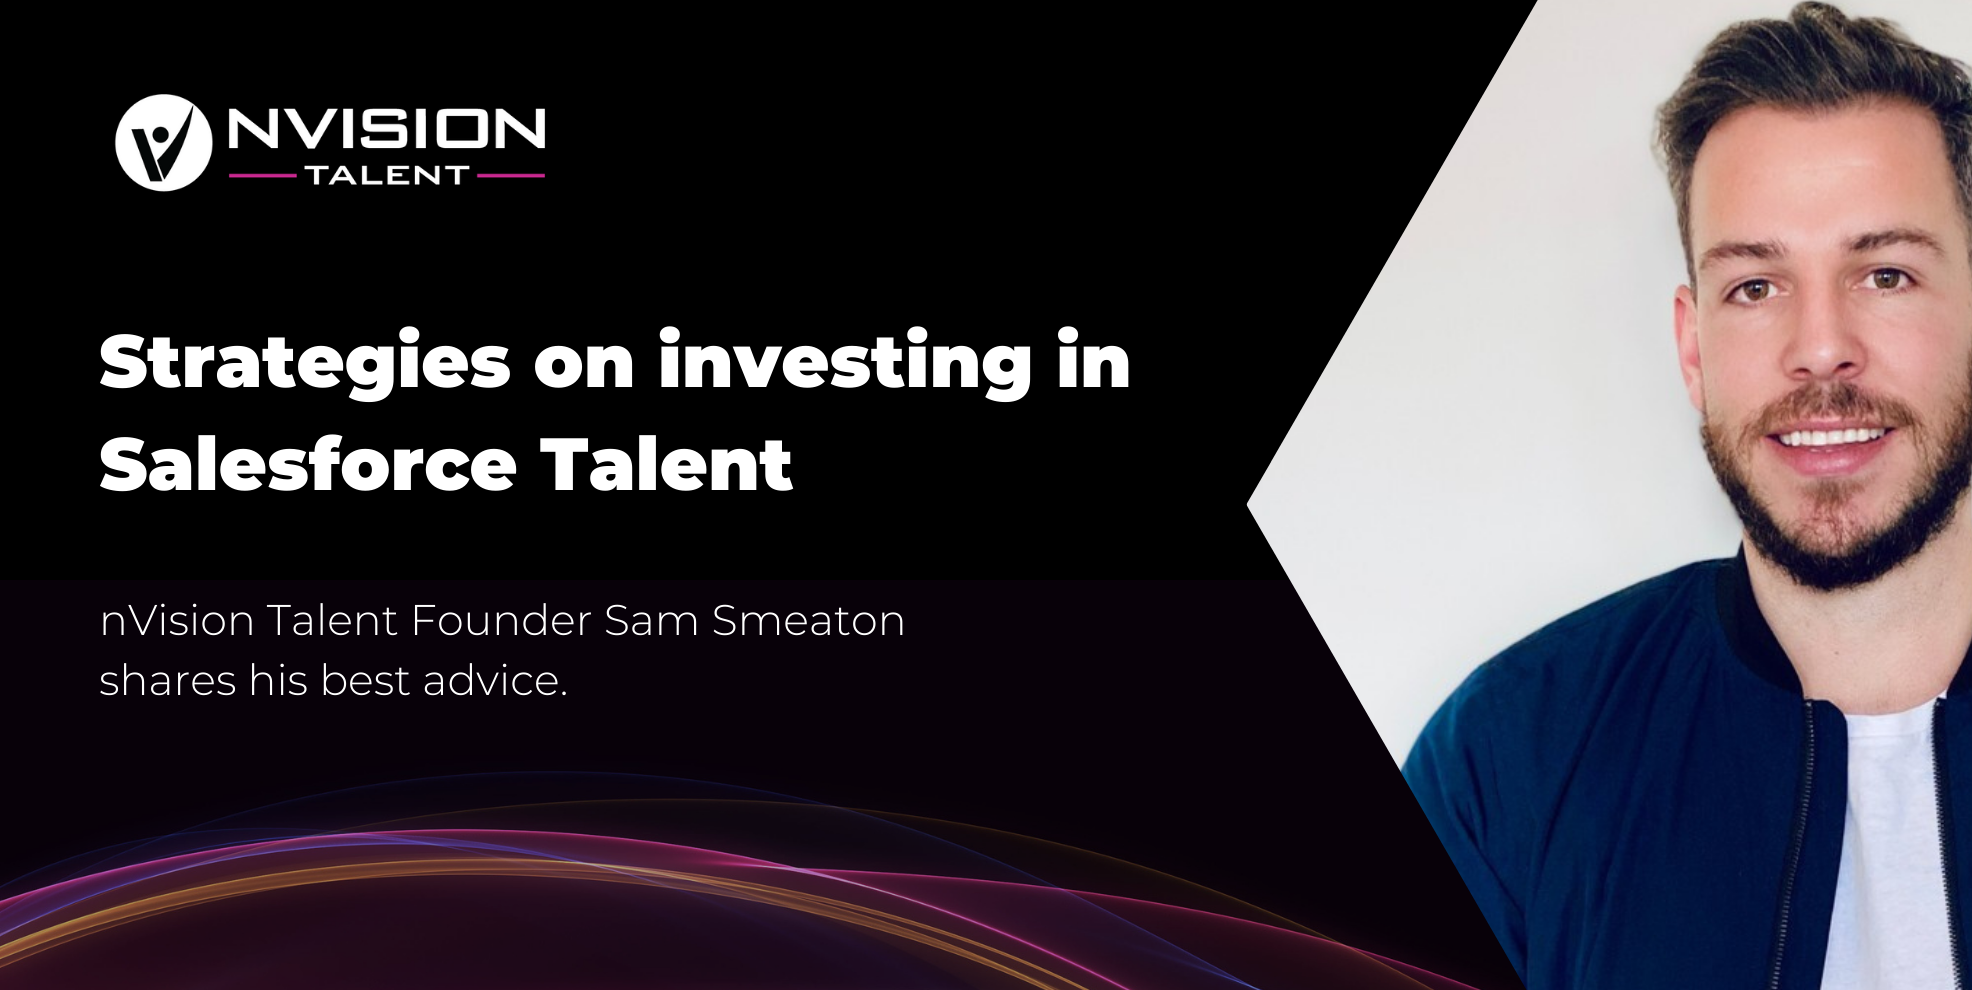 Strategies on Investing in Salesforce Talent